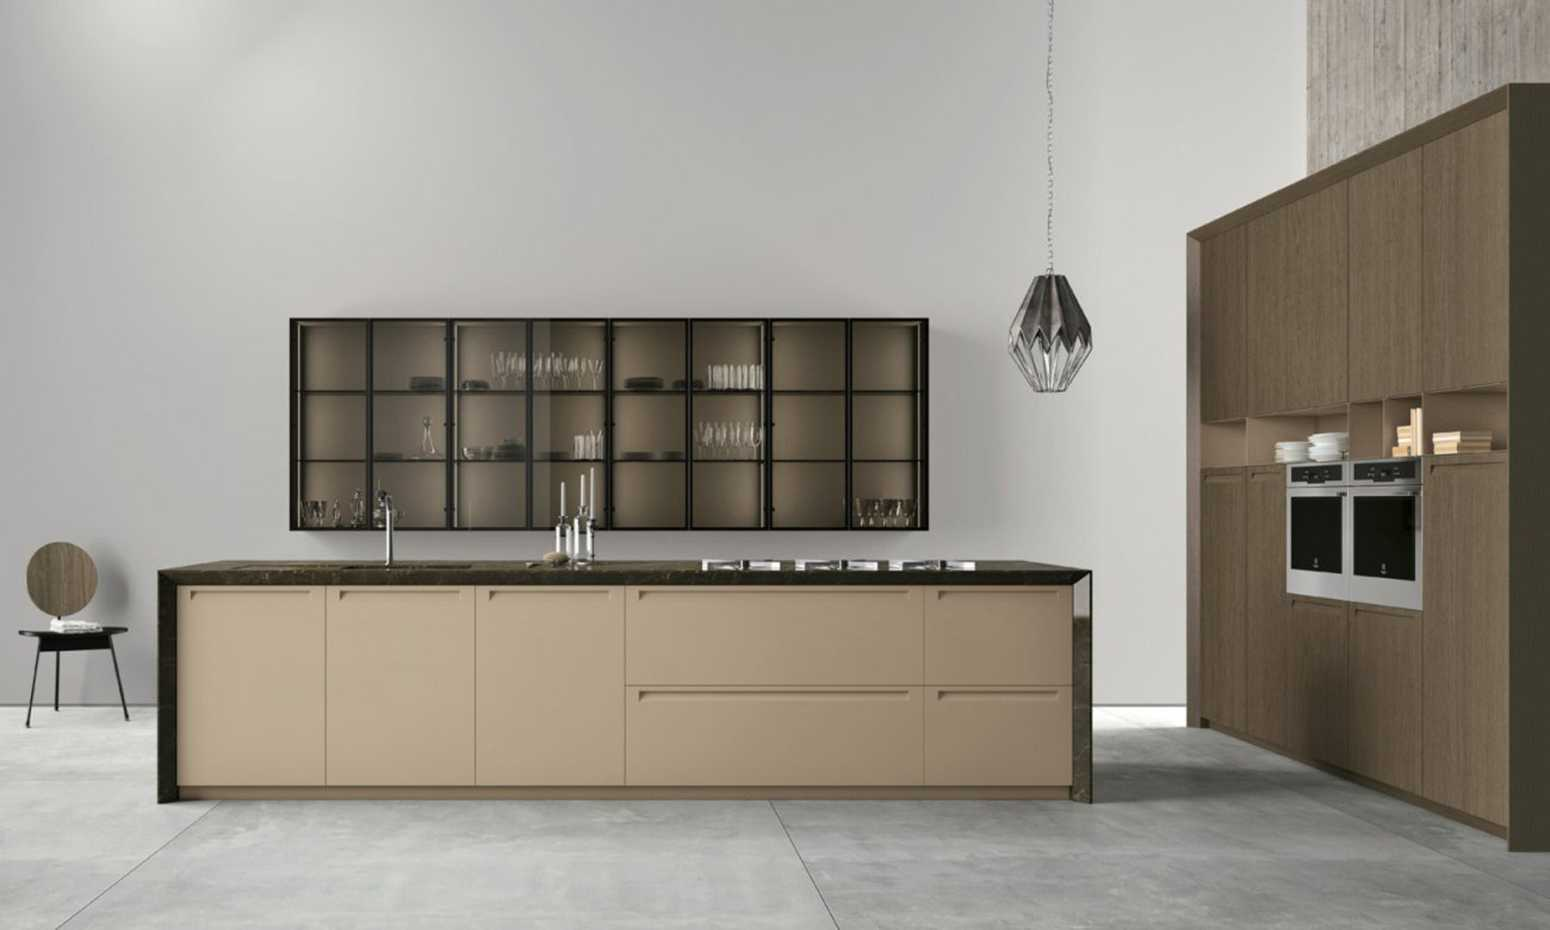 Extra by Doimo Cucine product image 4